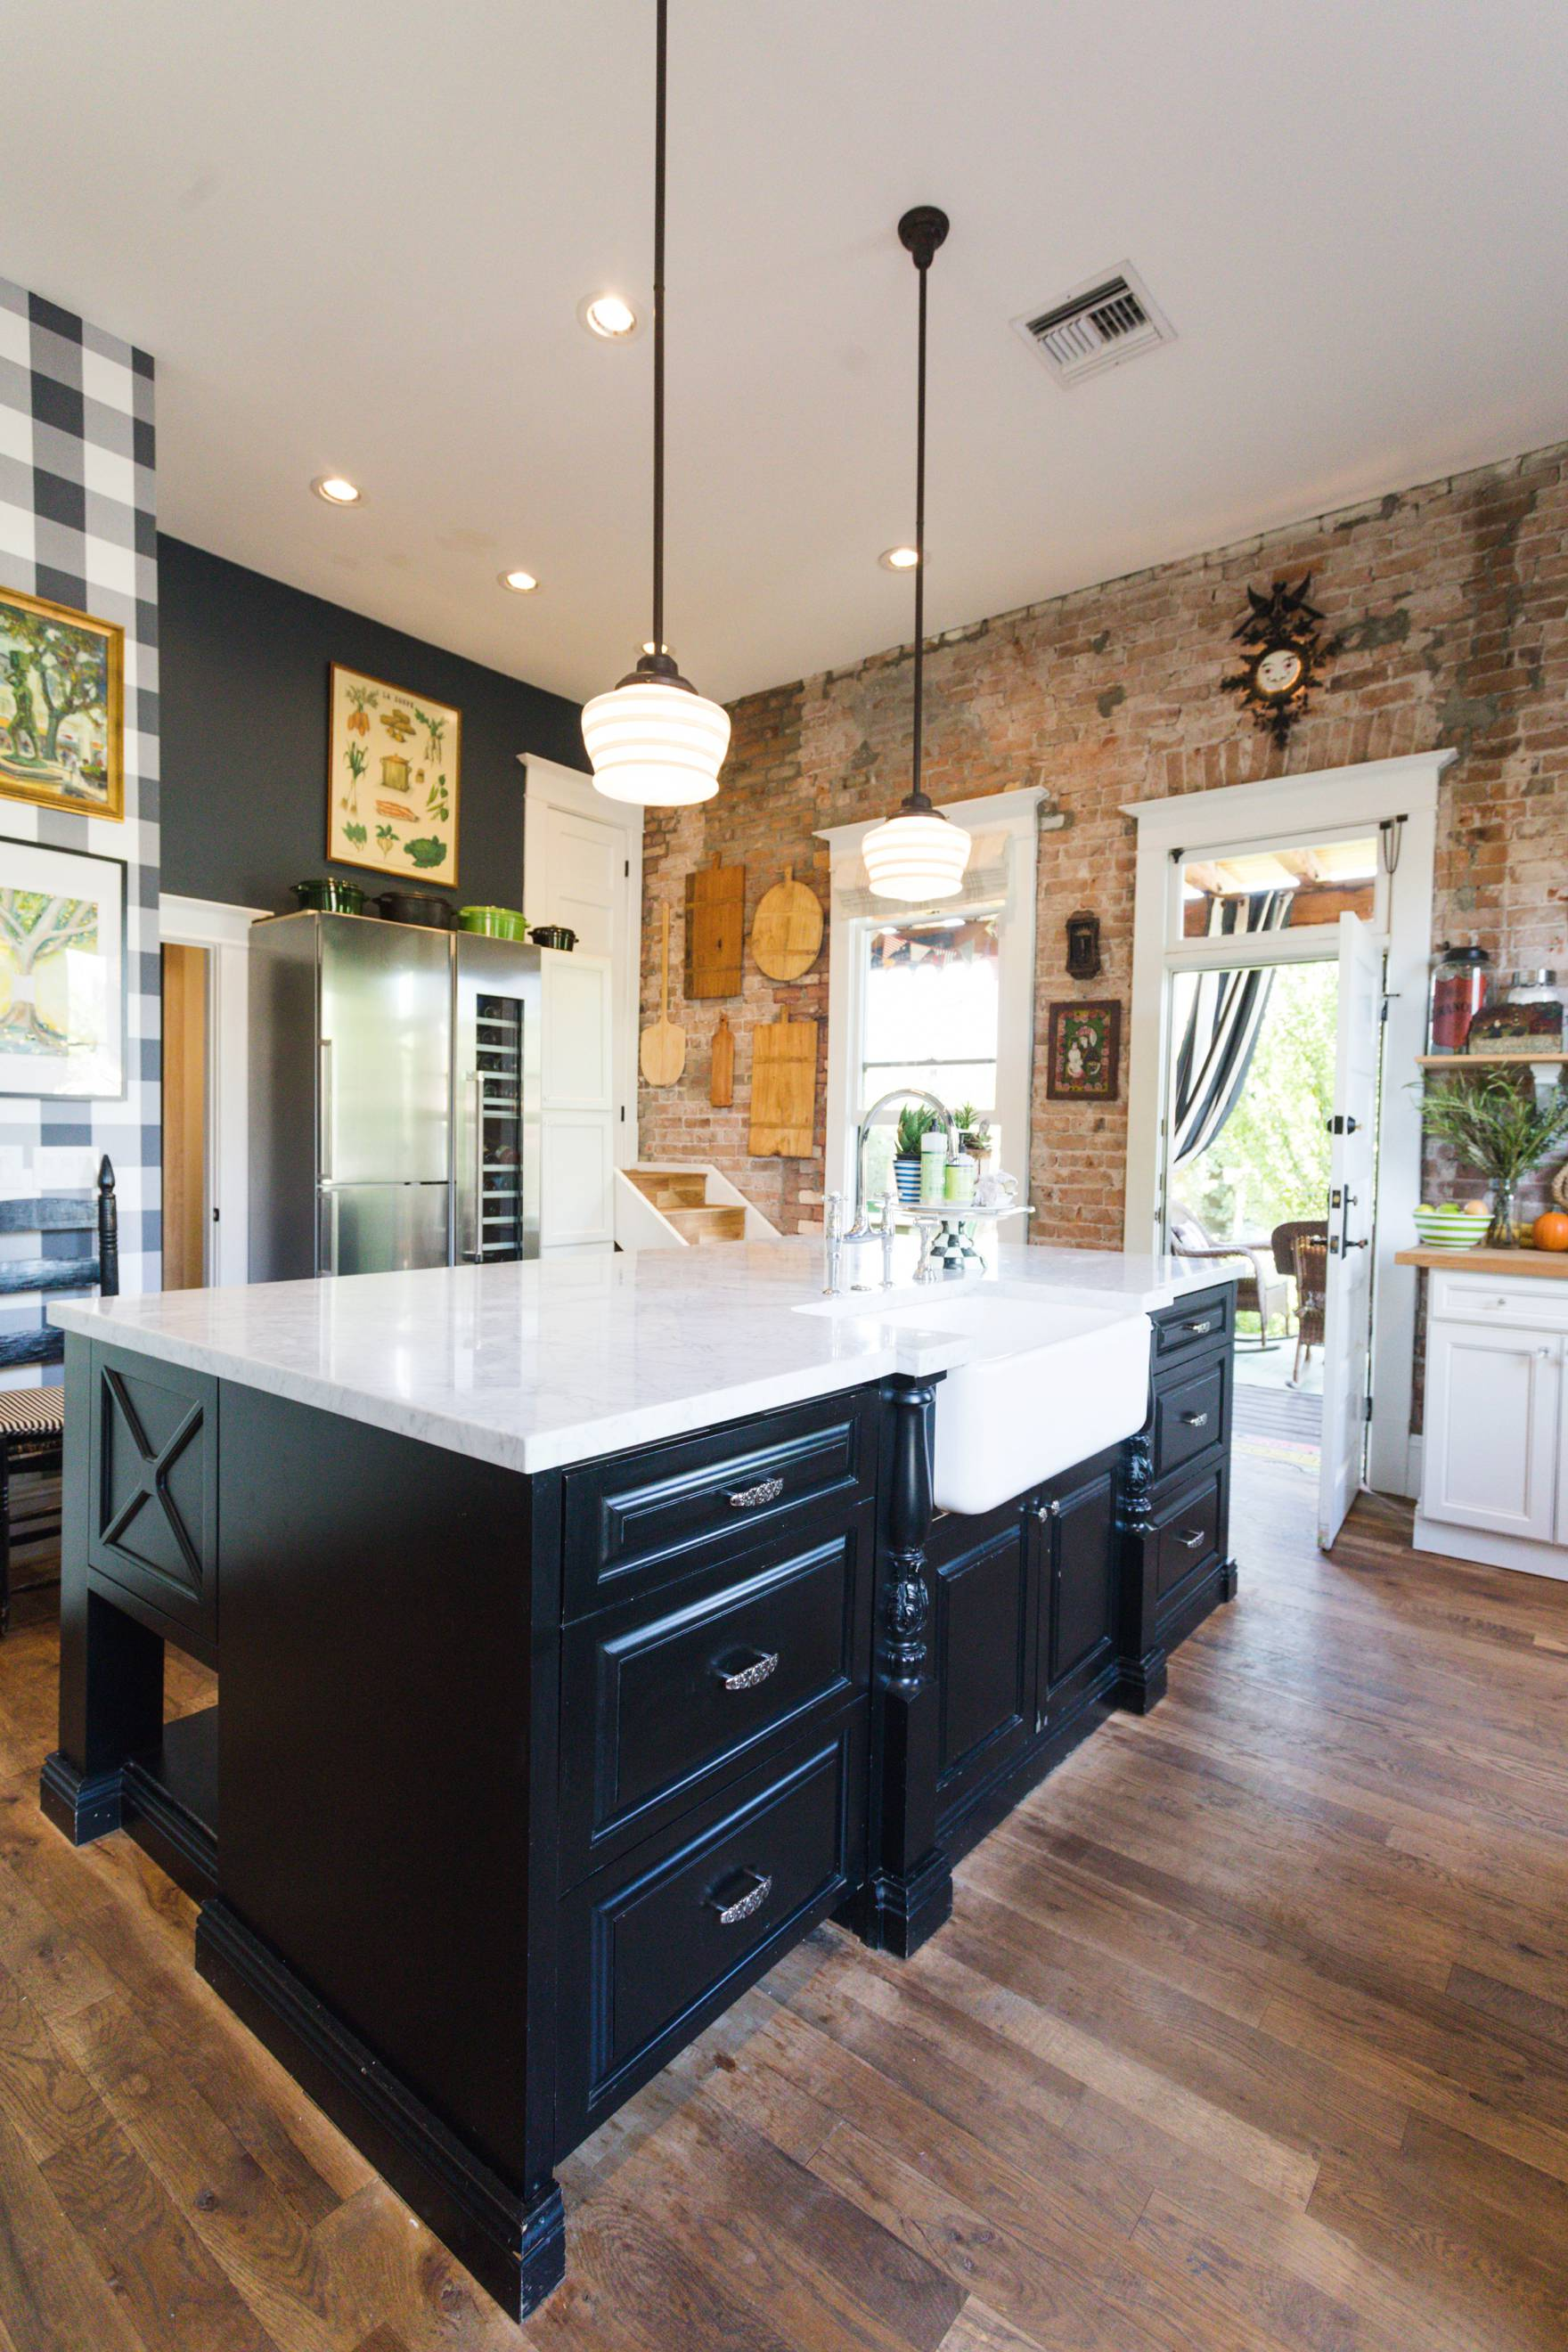 Home Tour of Boho Farm and Home in Downtown Phoenix - cottage brick style home from 1903 living room to kitchen details, gingham wallpaper cottage style decor kitchen island storage farmhouse sink exposed brick